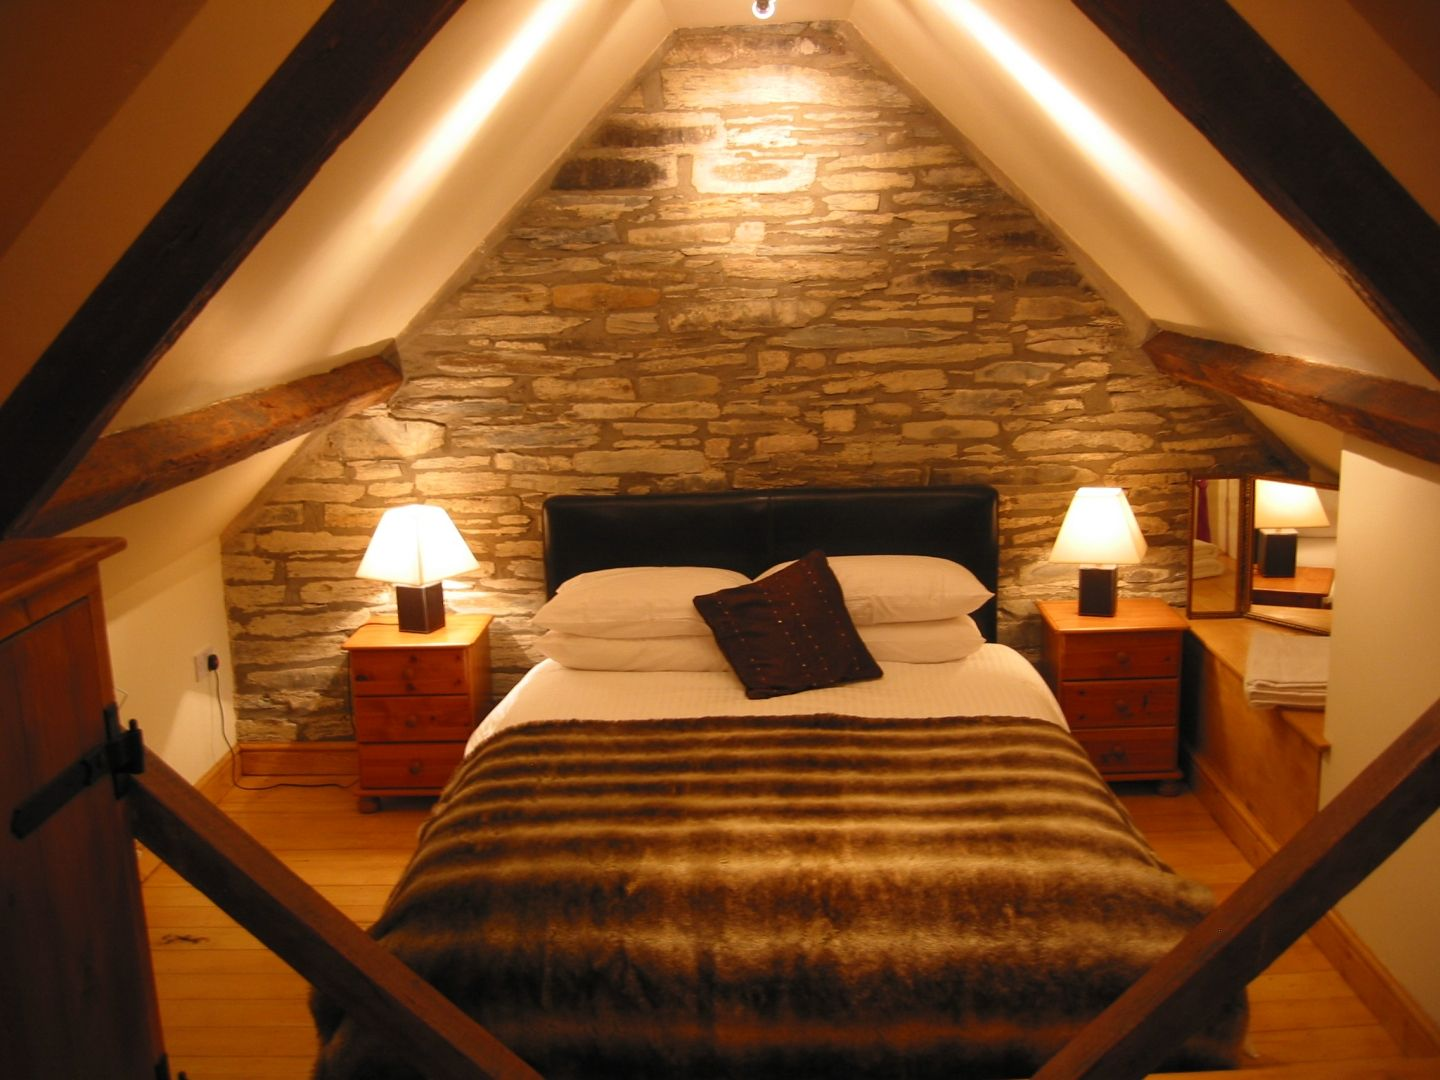 Pin by chris brucker on ideas for house pinterest attic bedrooms